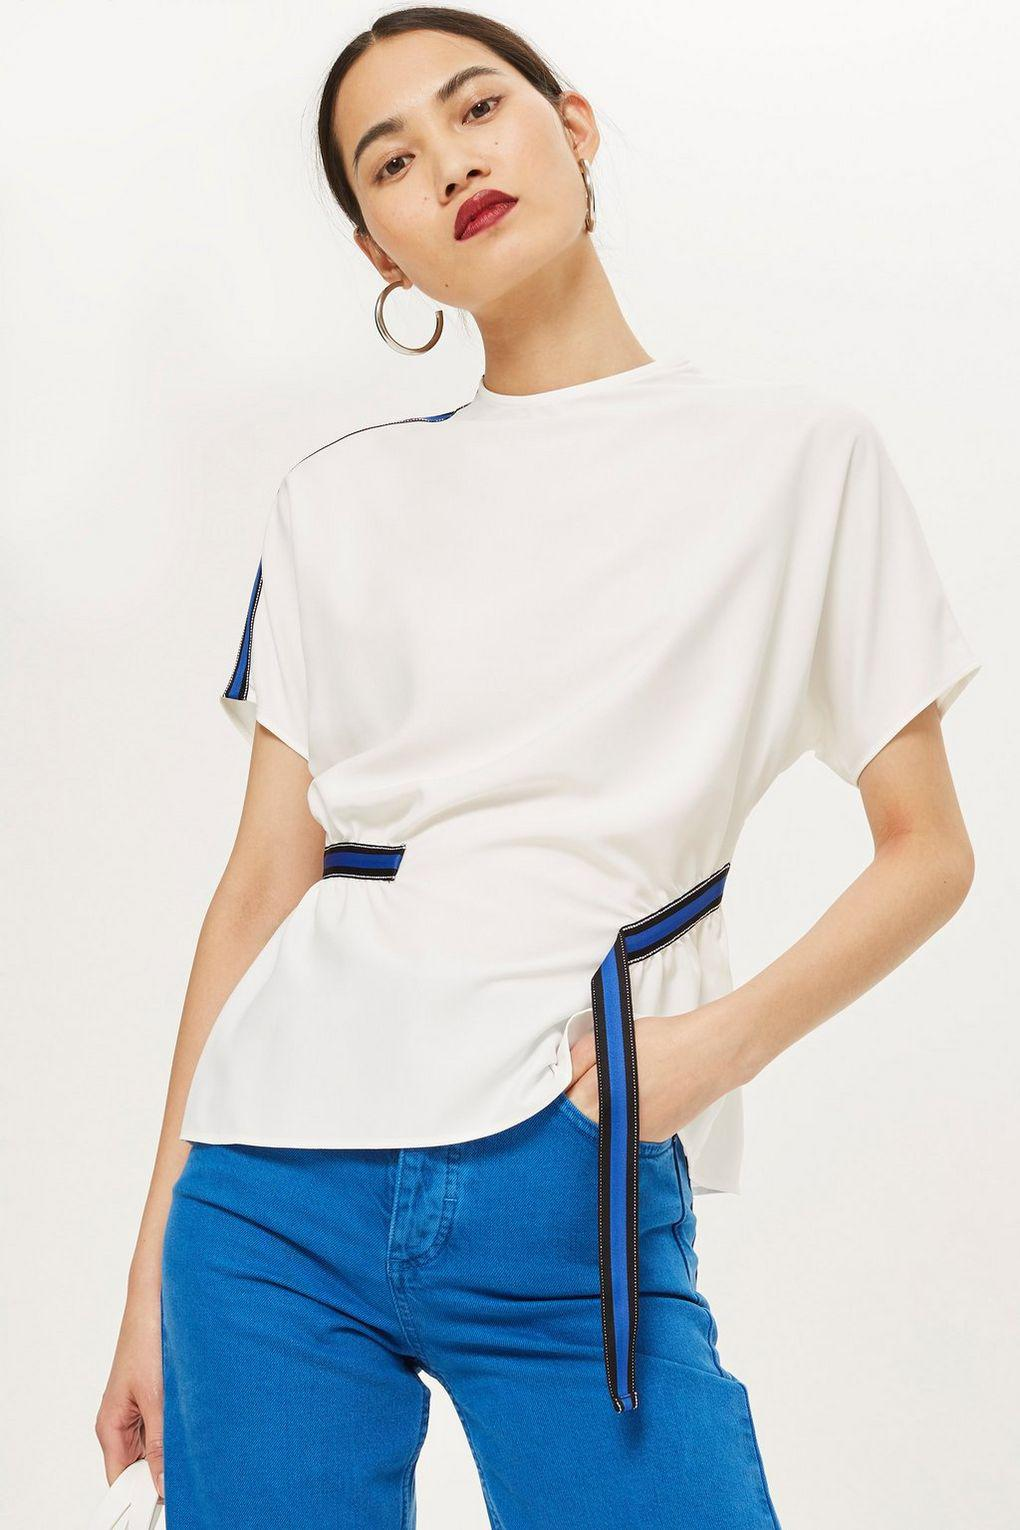 Lyst - TOPSHOP Blue Side Striped Blouse in White 0eff43031